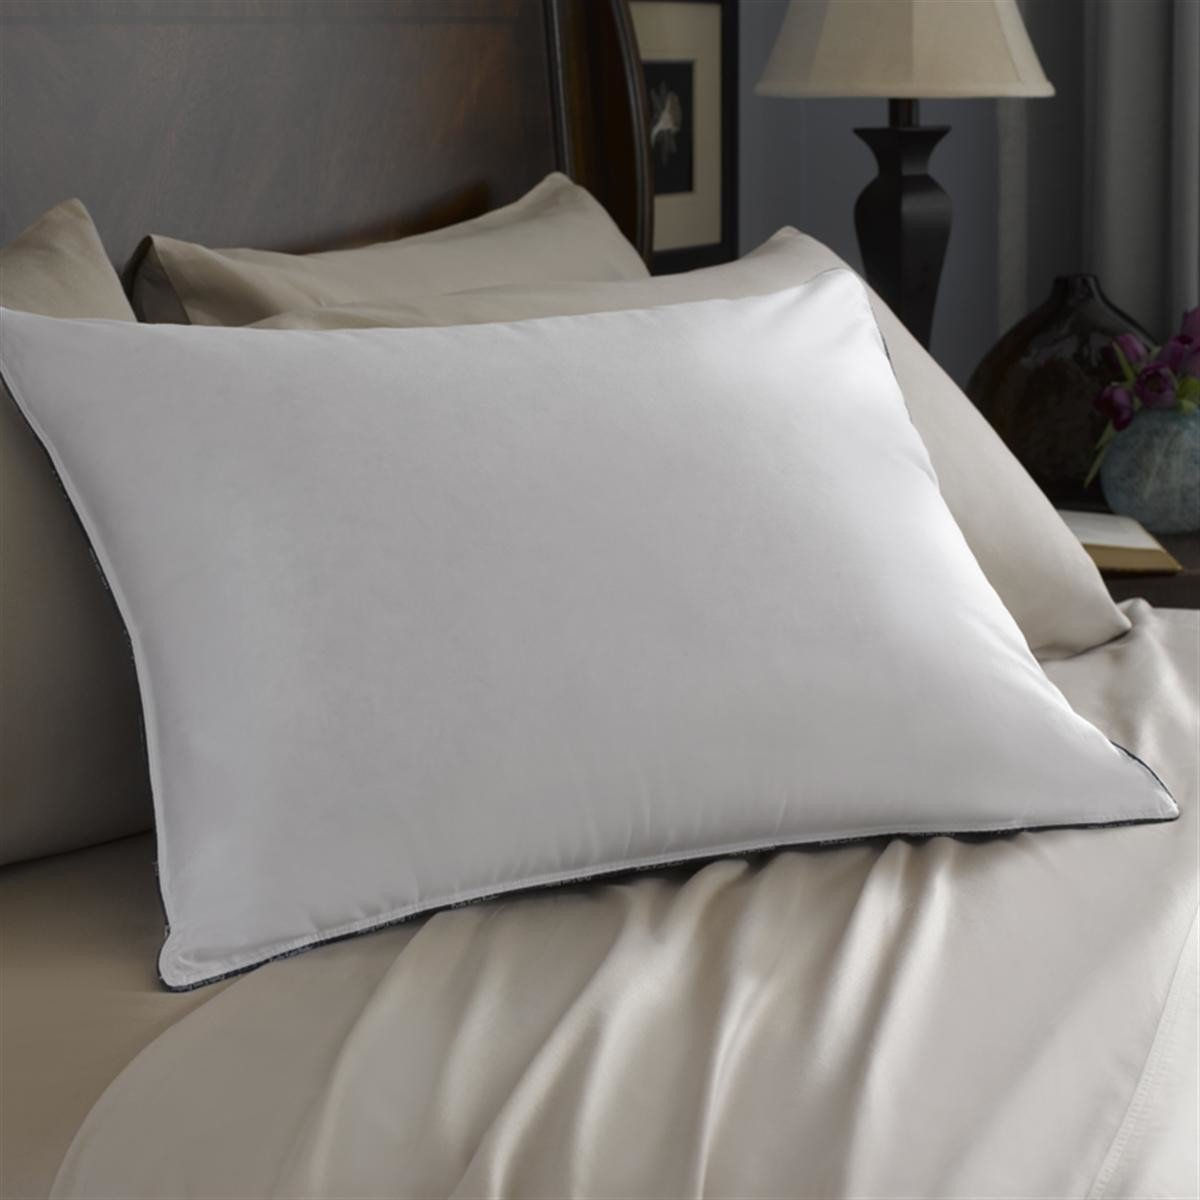 all pillow down pillows of pillowcase freshpillowscom tria gallery size dimensions double coast pacific queen downaround firm a